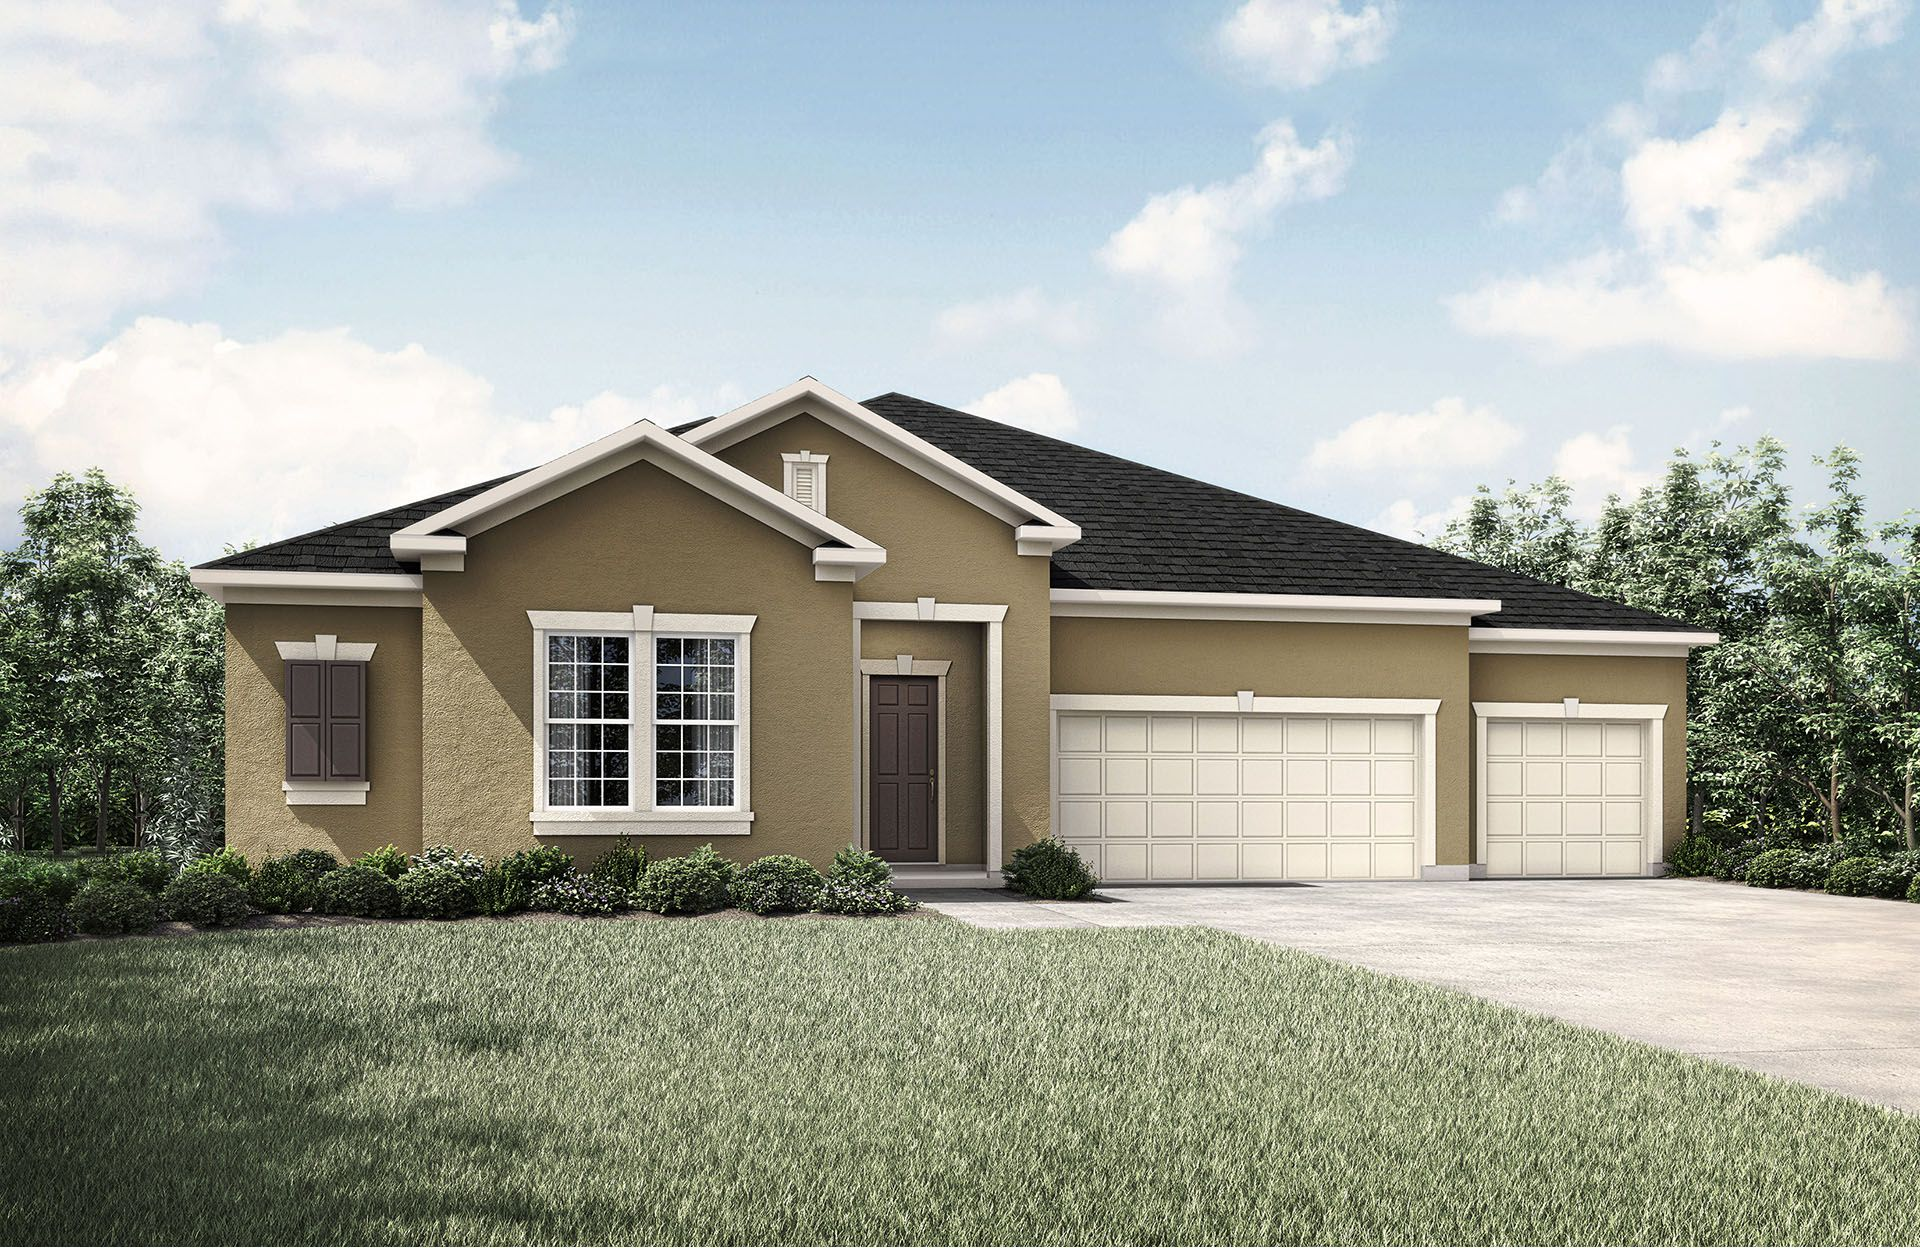 Single Family for Sale at Jacksonville Offsite - Teagan Jacksonville, Florida 32257 United States